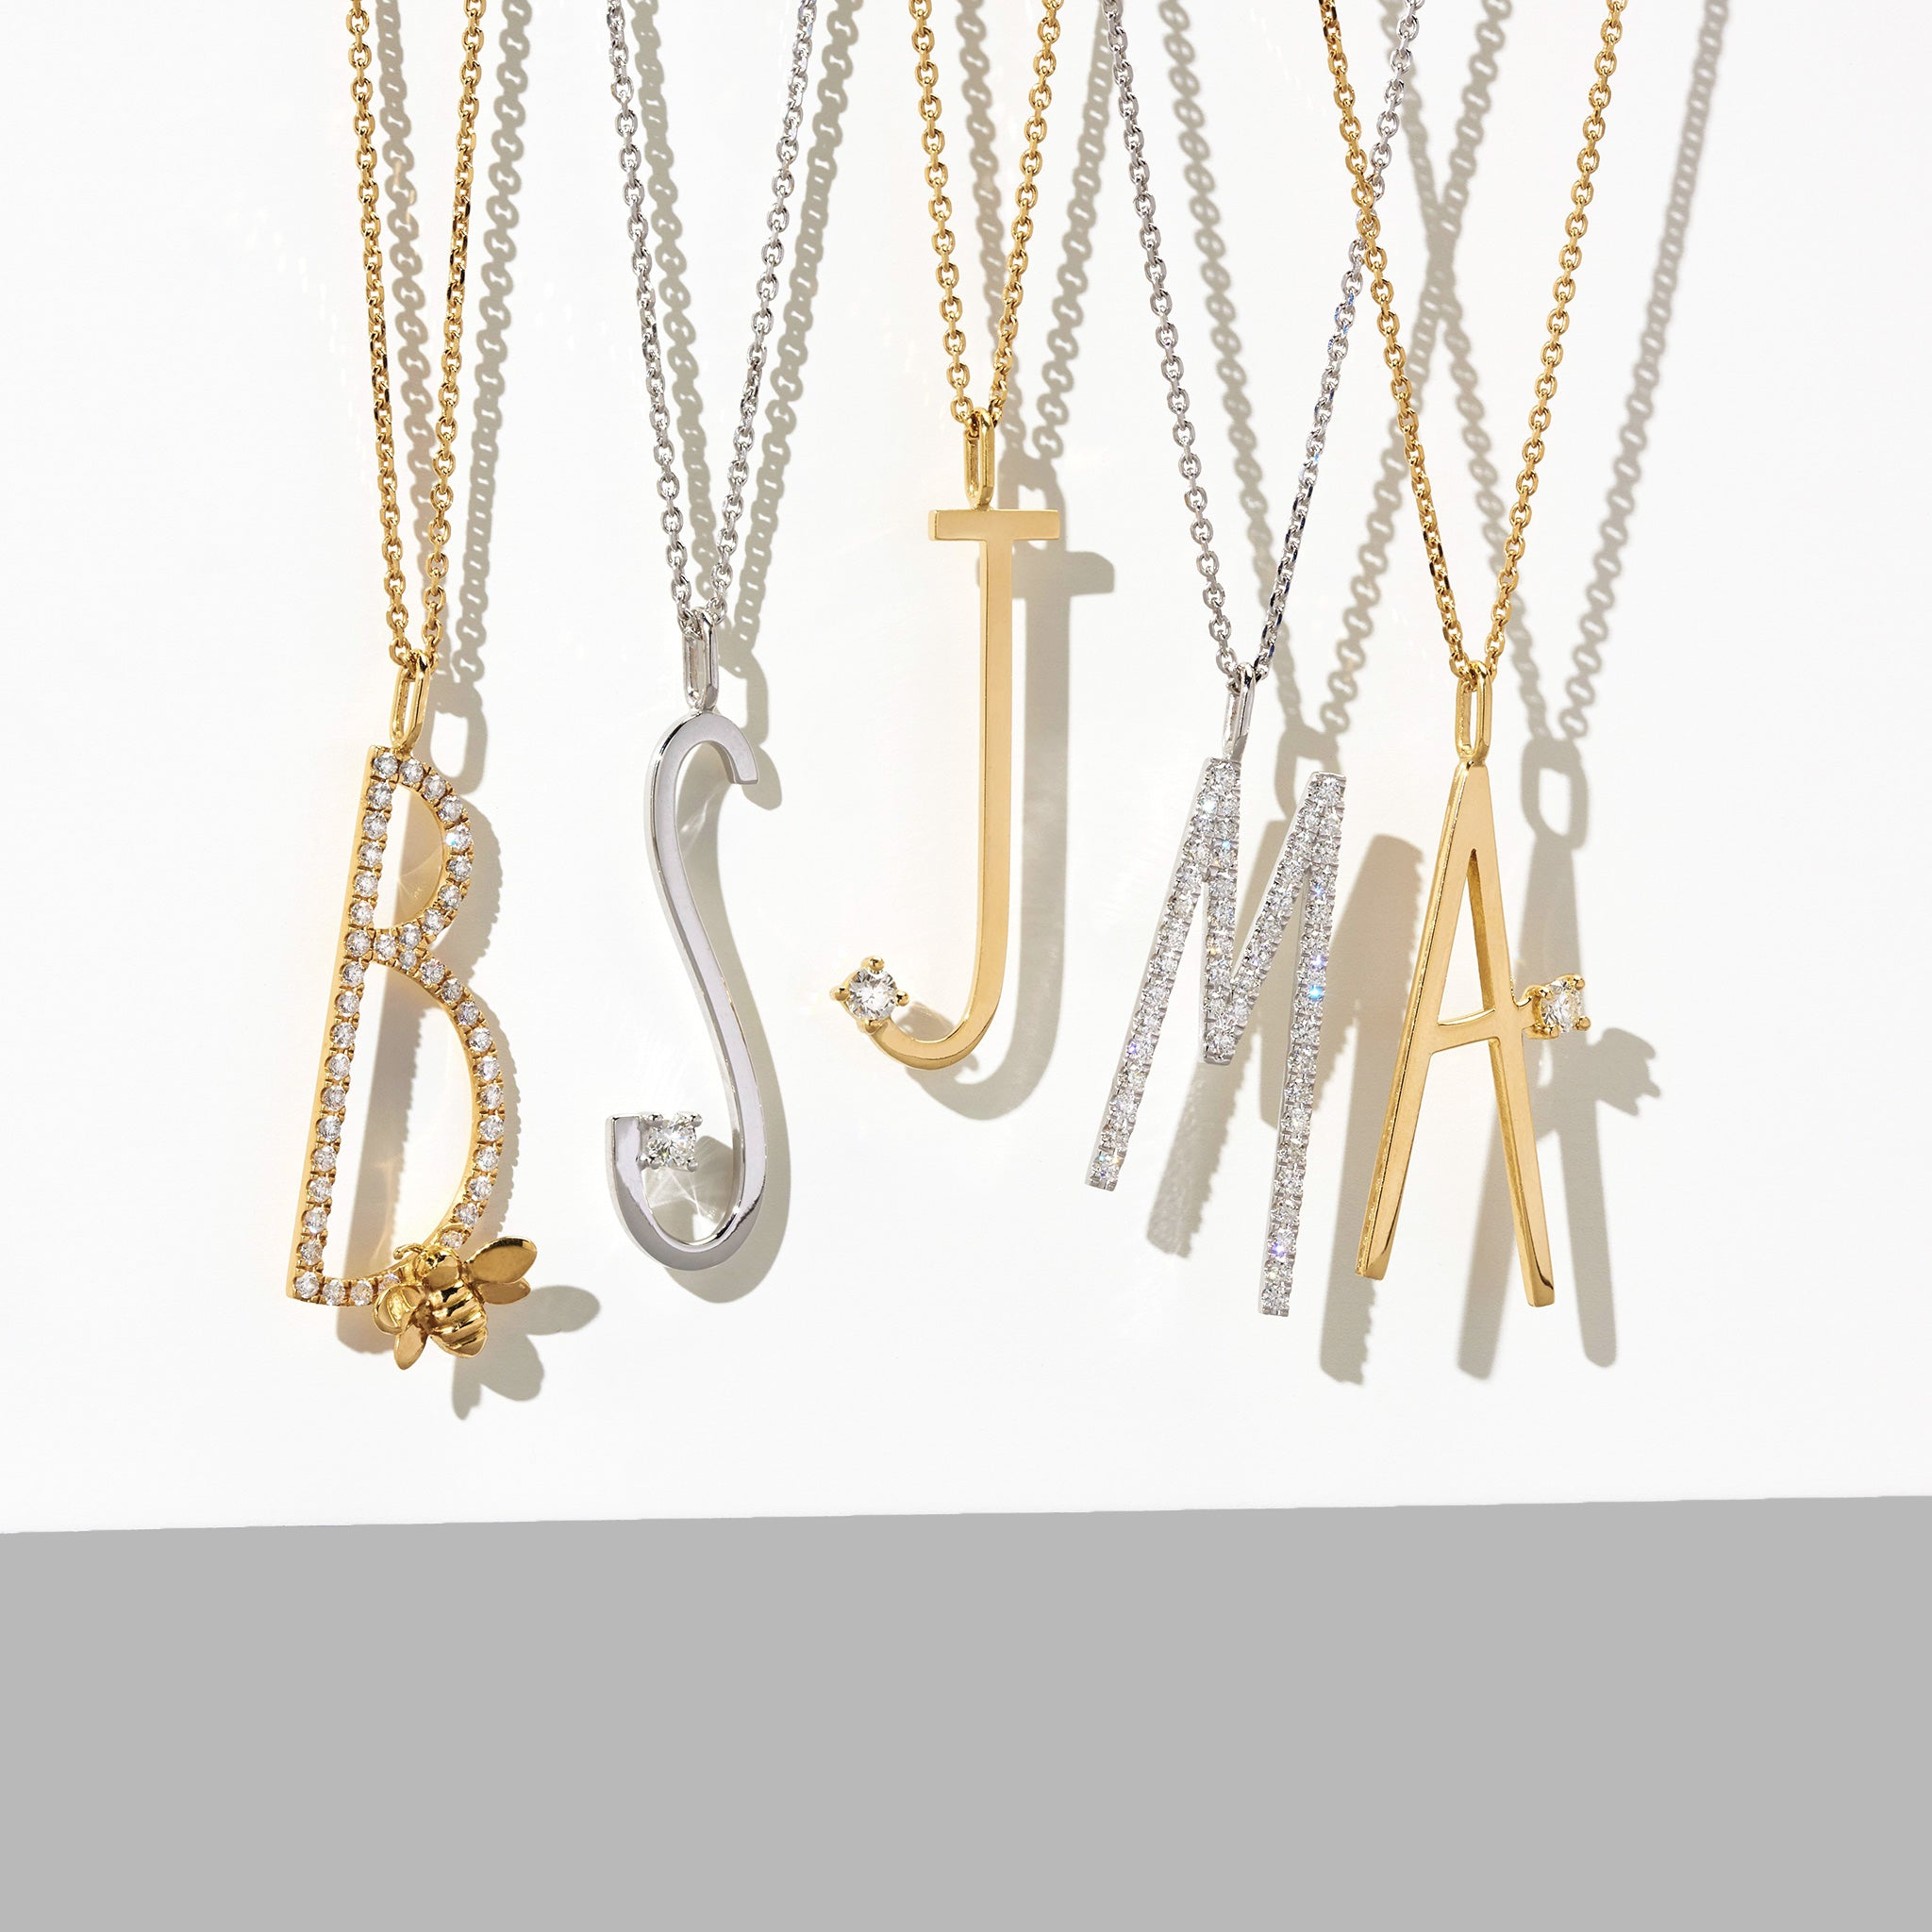 Mimi So Type Collection Necklaces